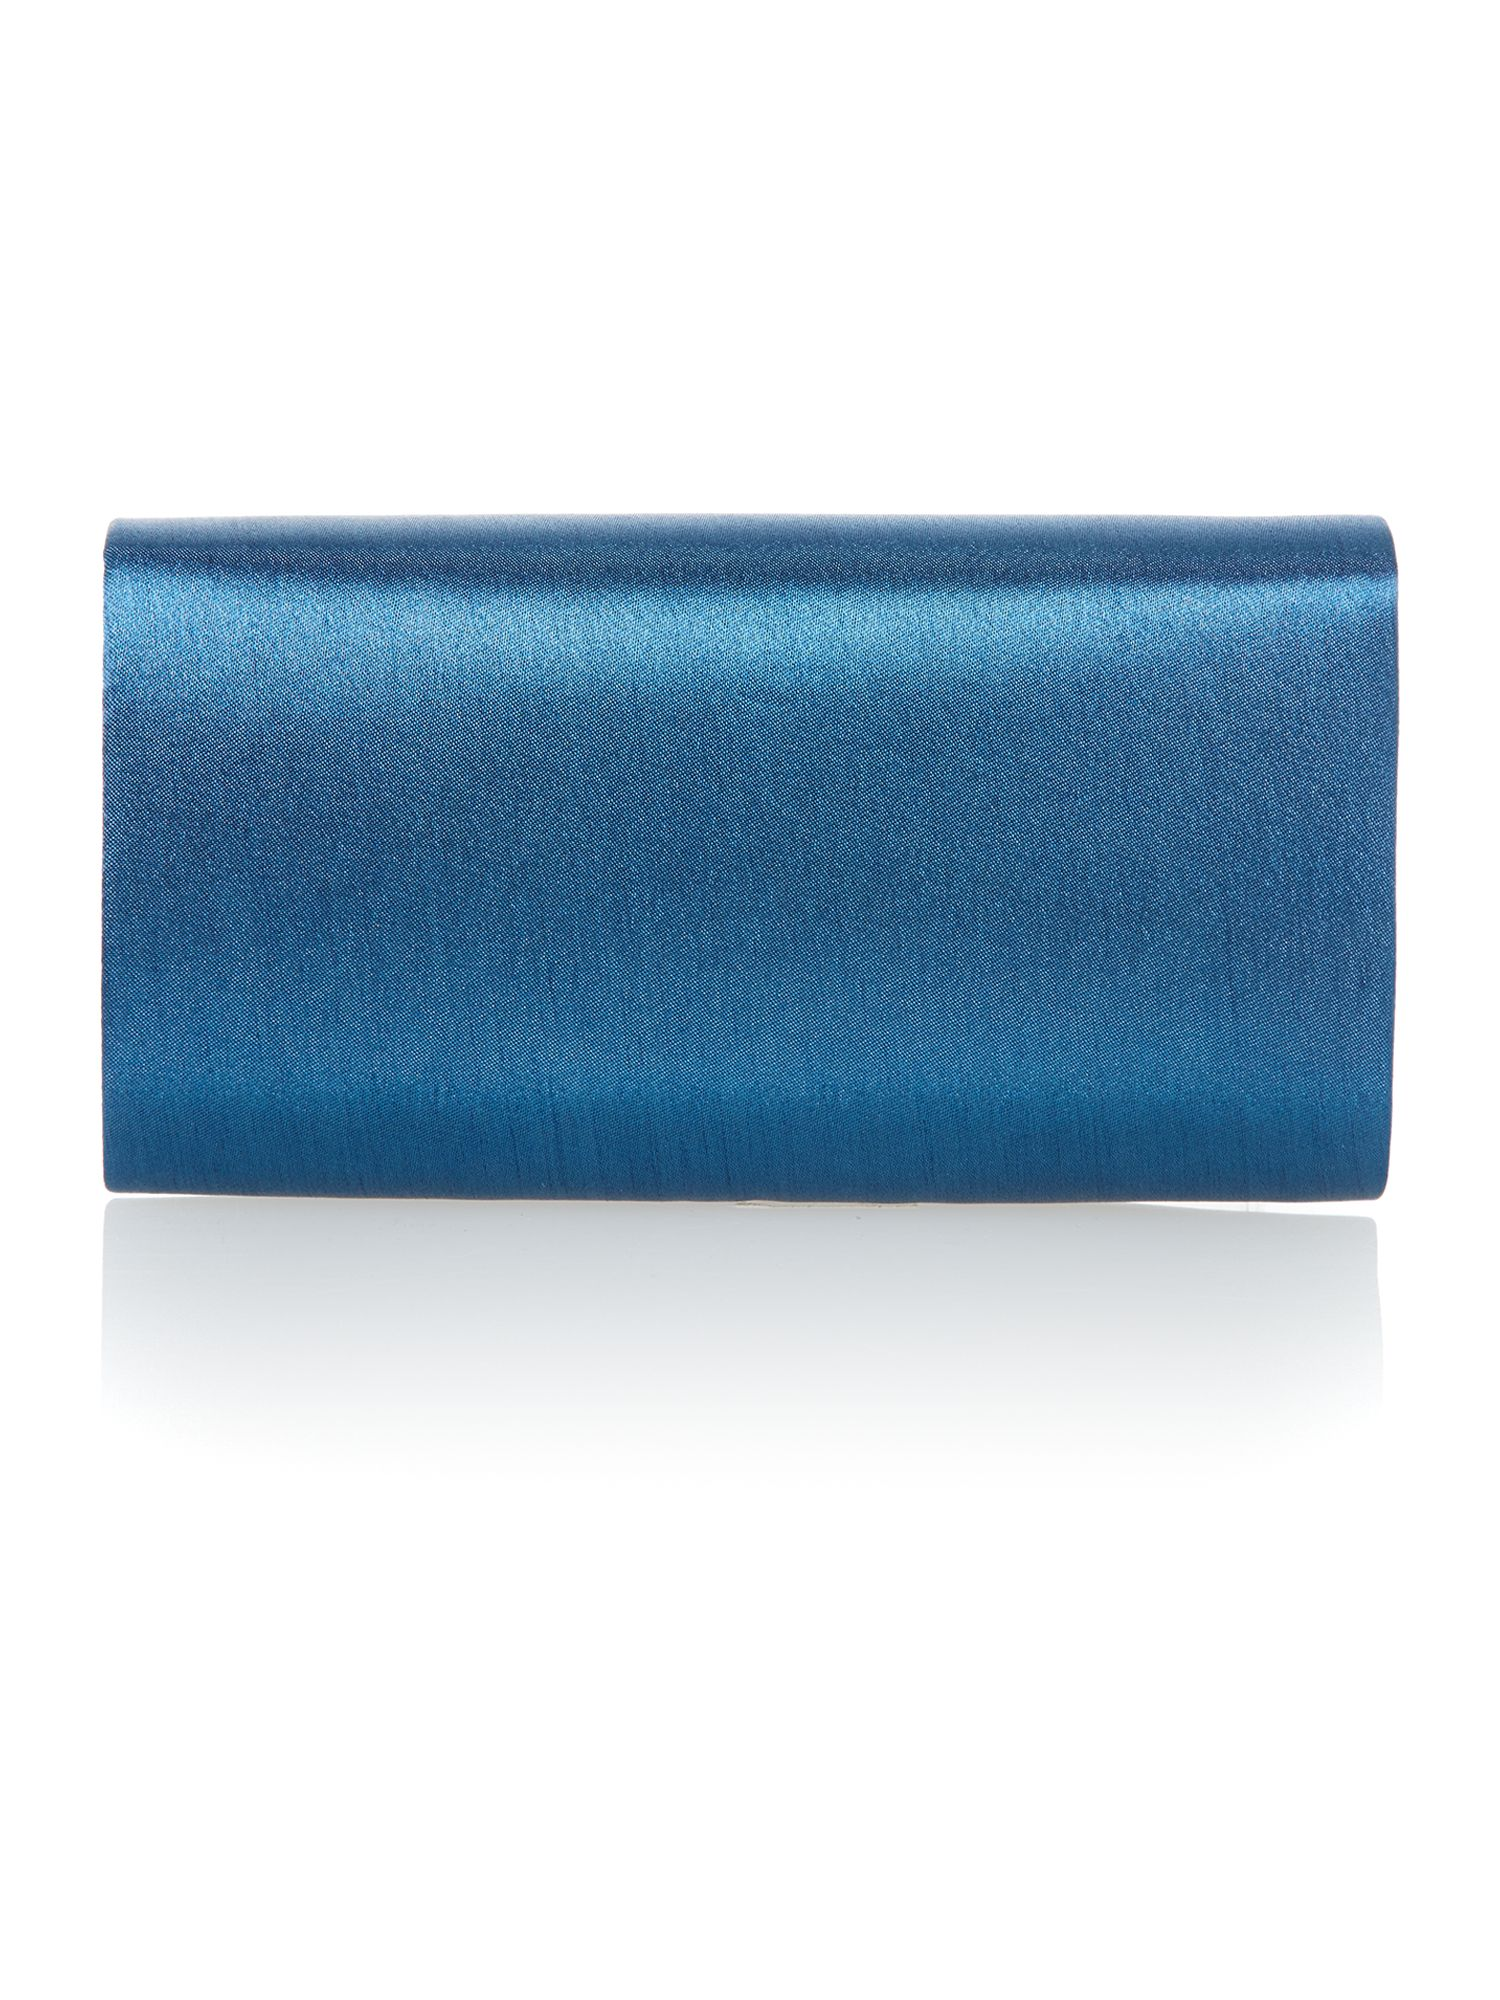 Green satin clutch bag